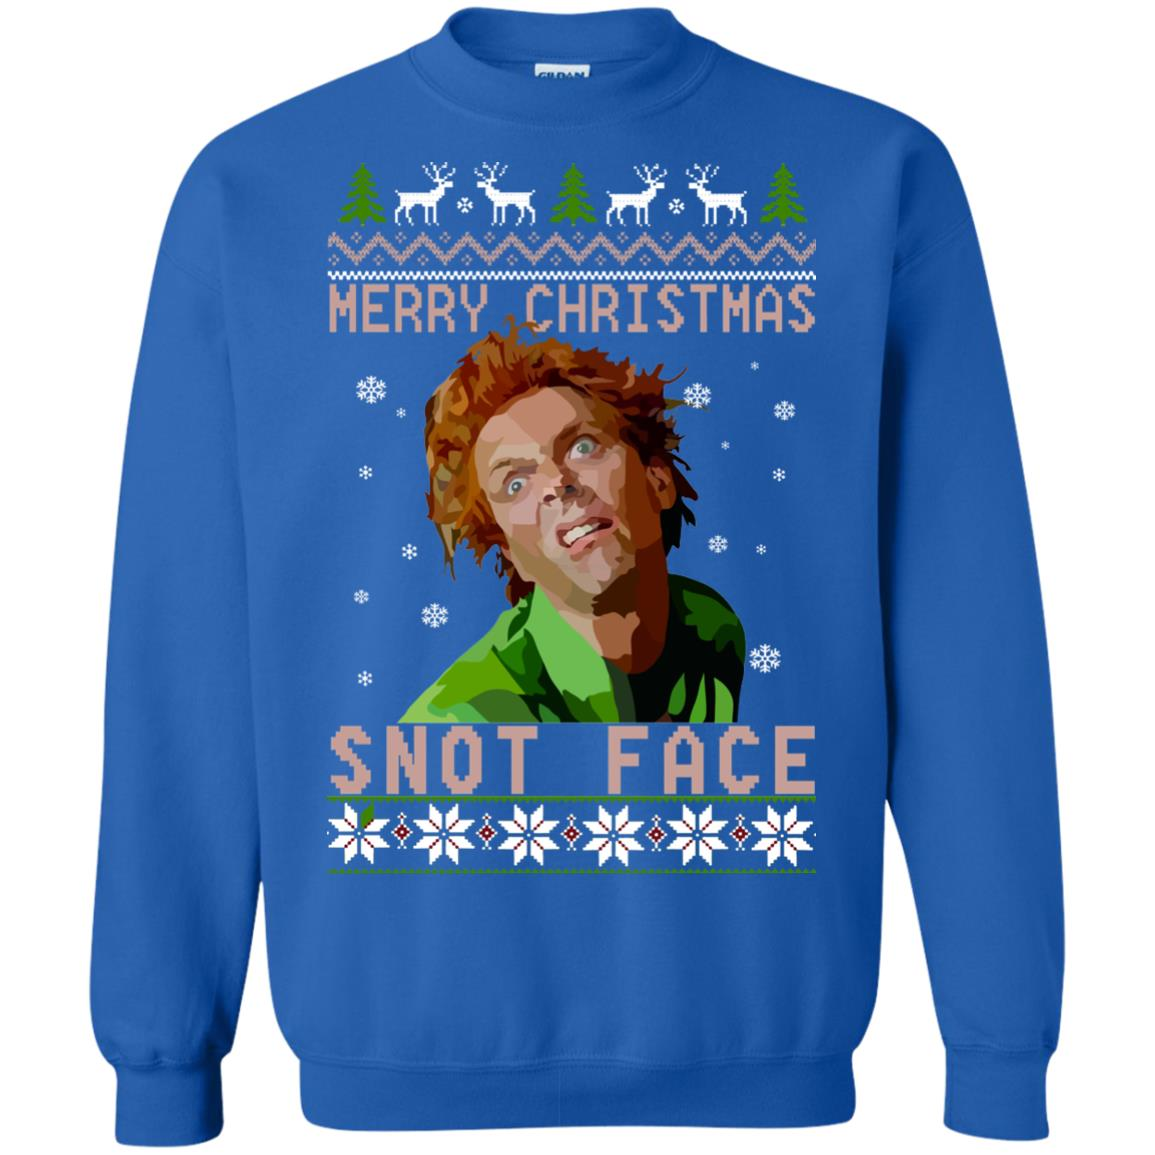 Christmas Ugly Sweater.Drop Dead Fred Snot Face Christmas Ugly Sweater Hoodie